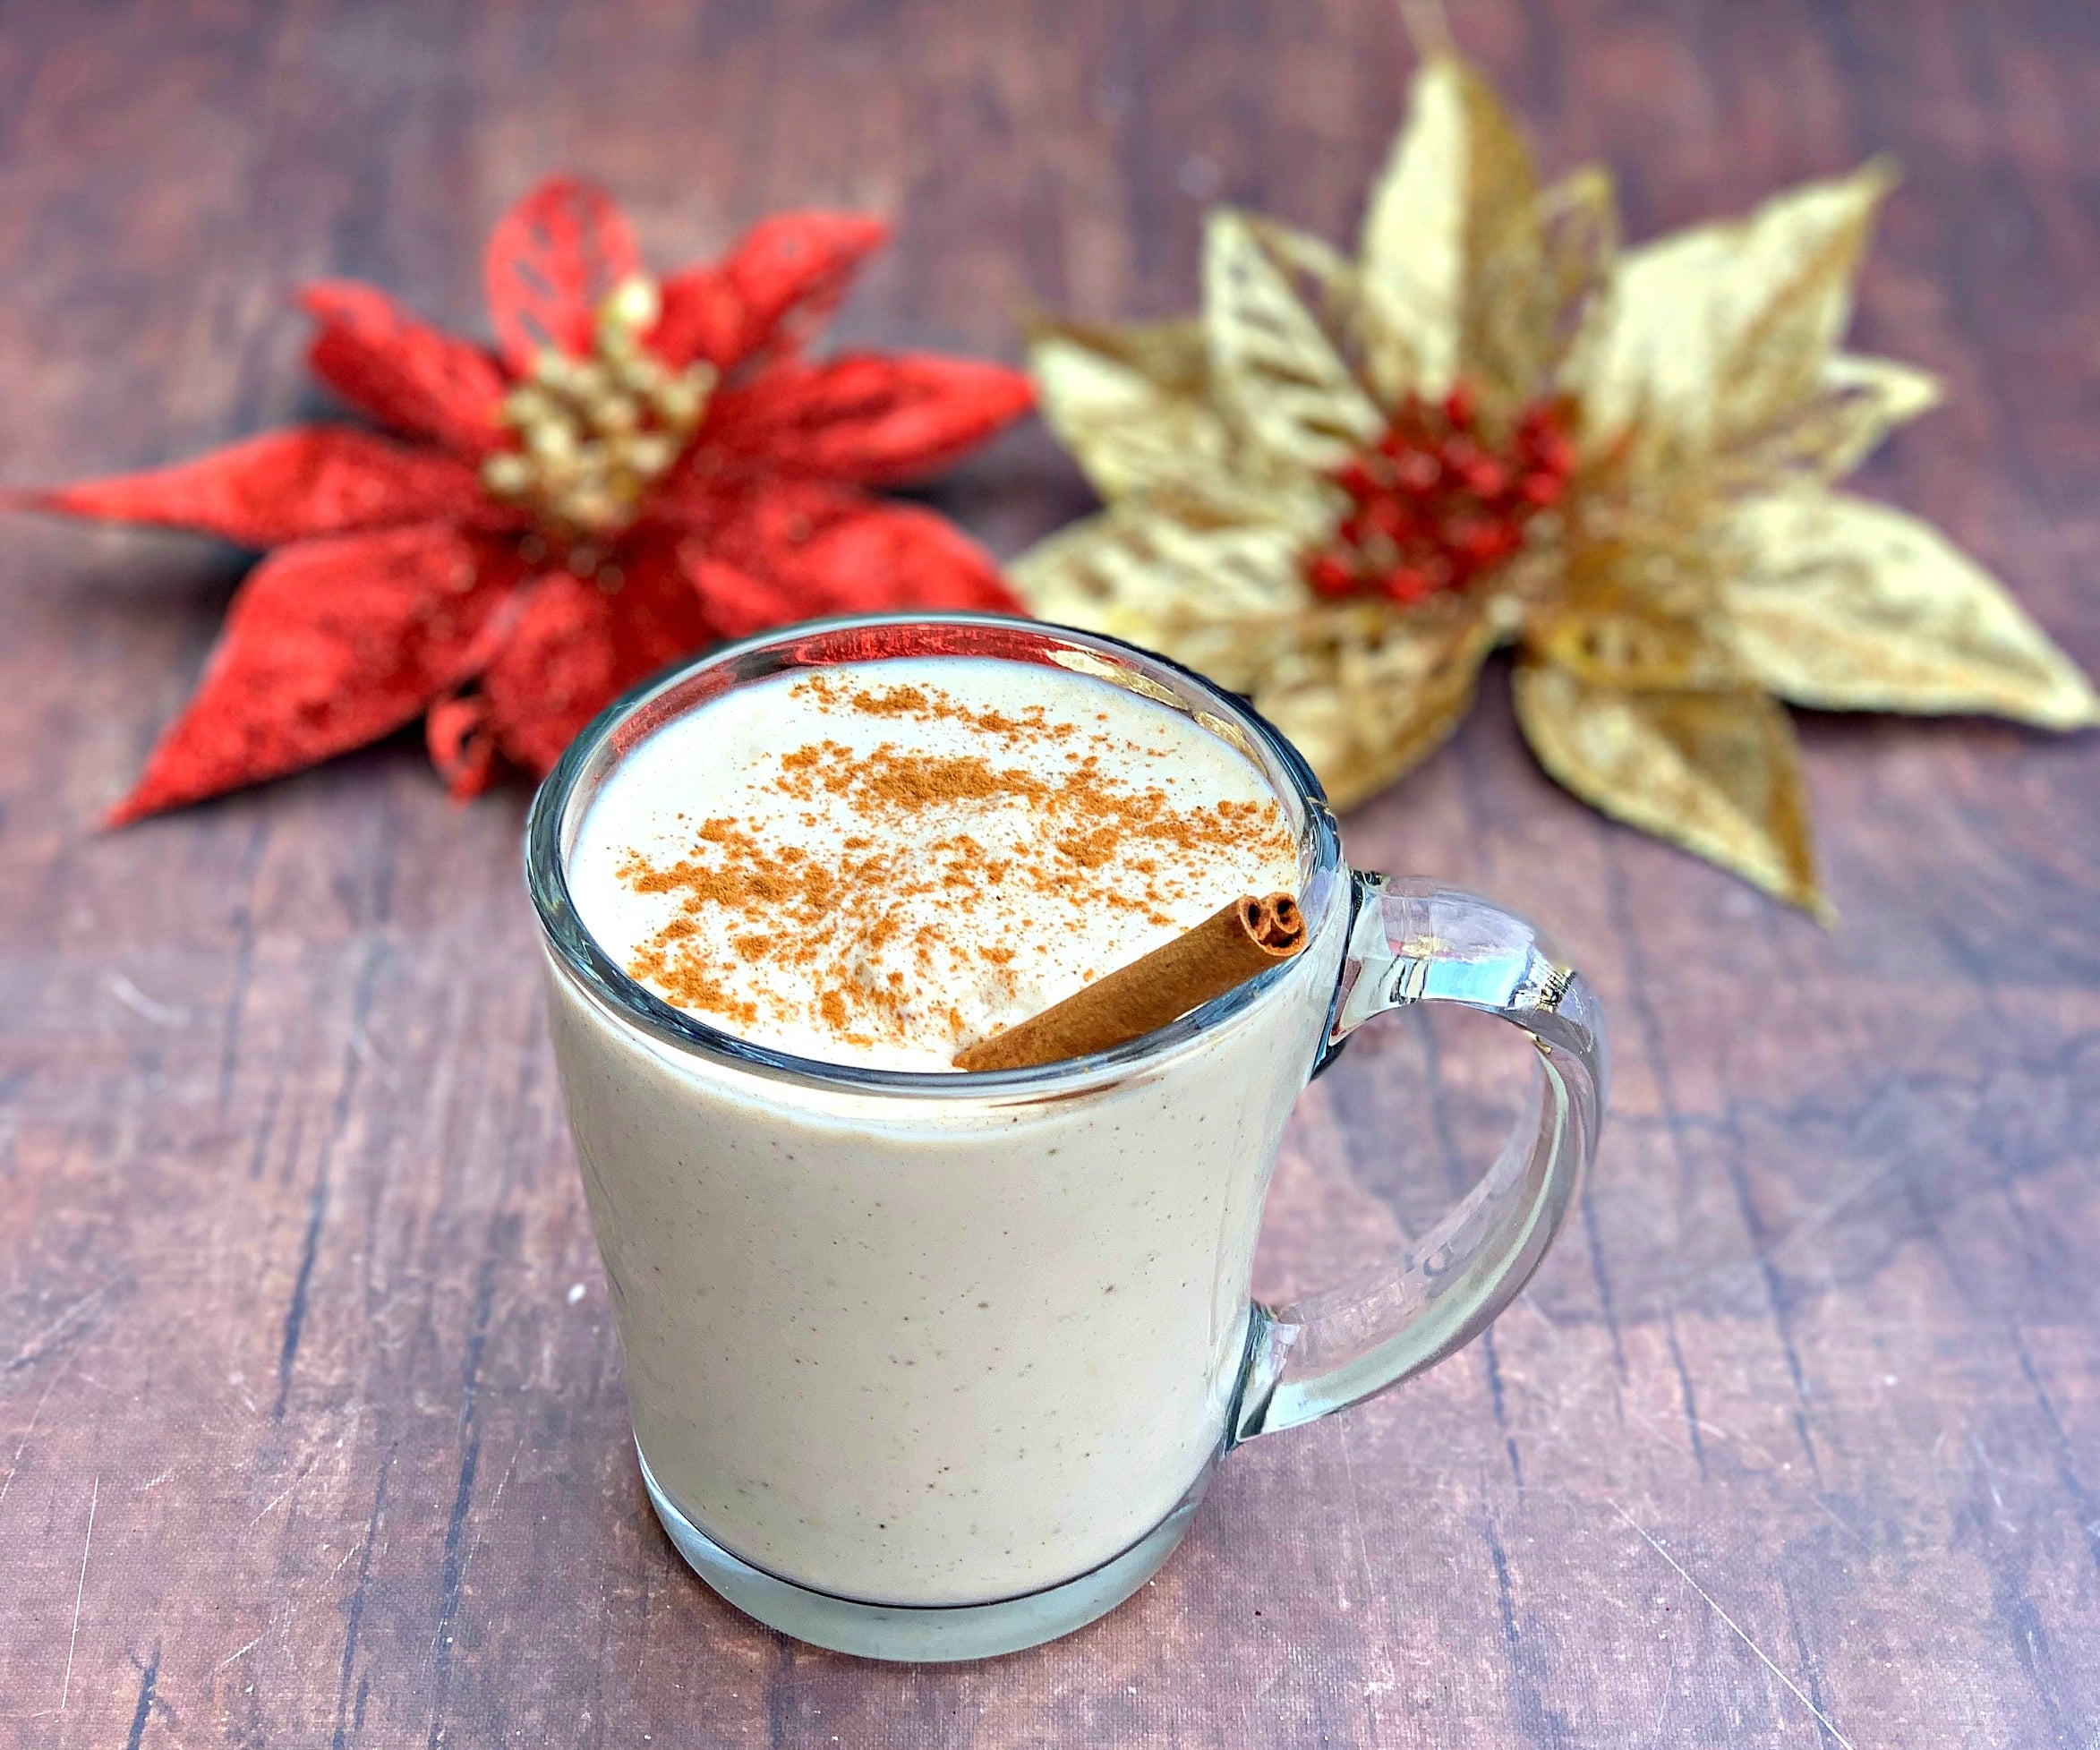 keto low carb egg nog in a mug with holiday decor in the background